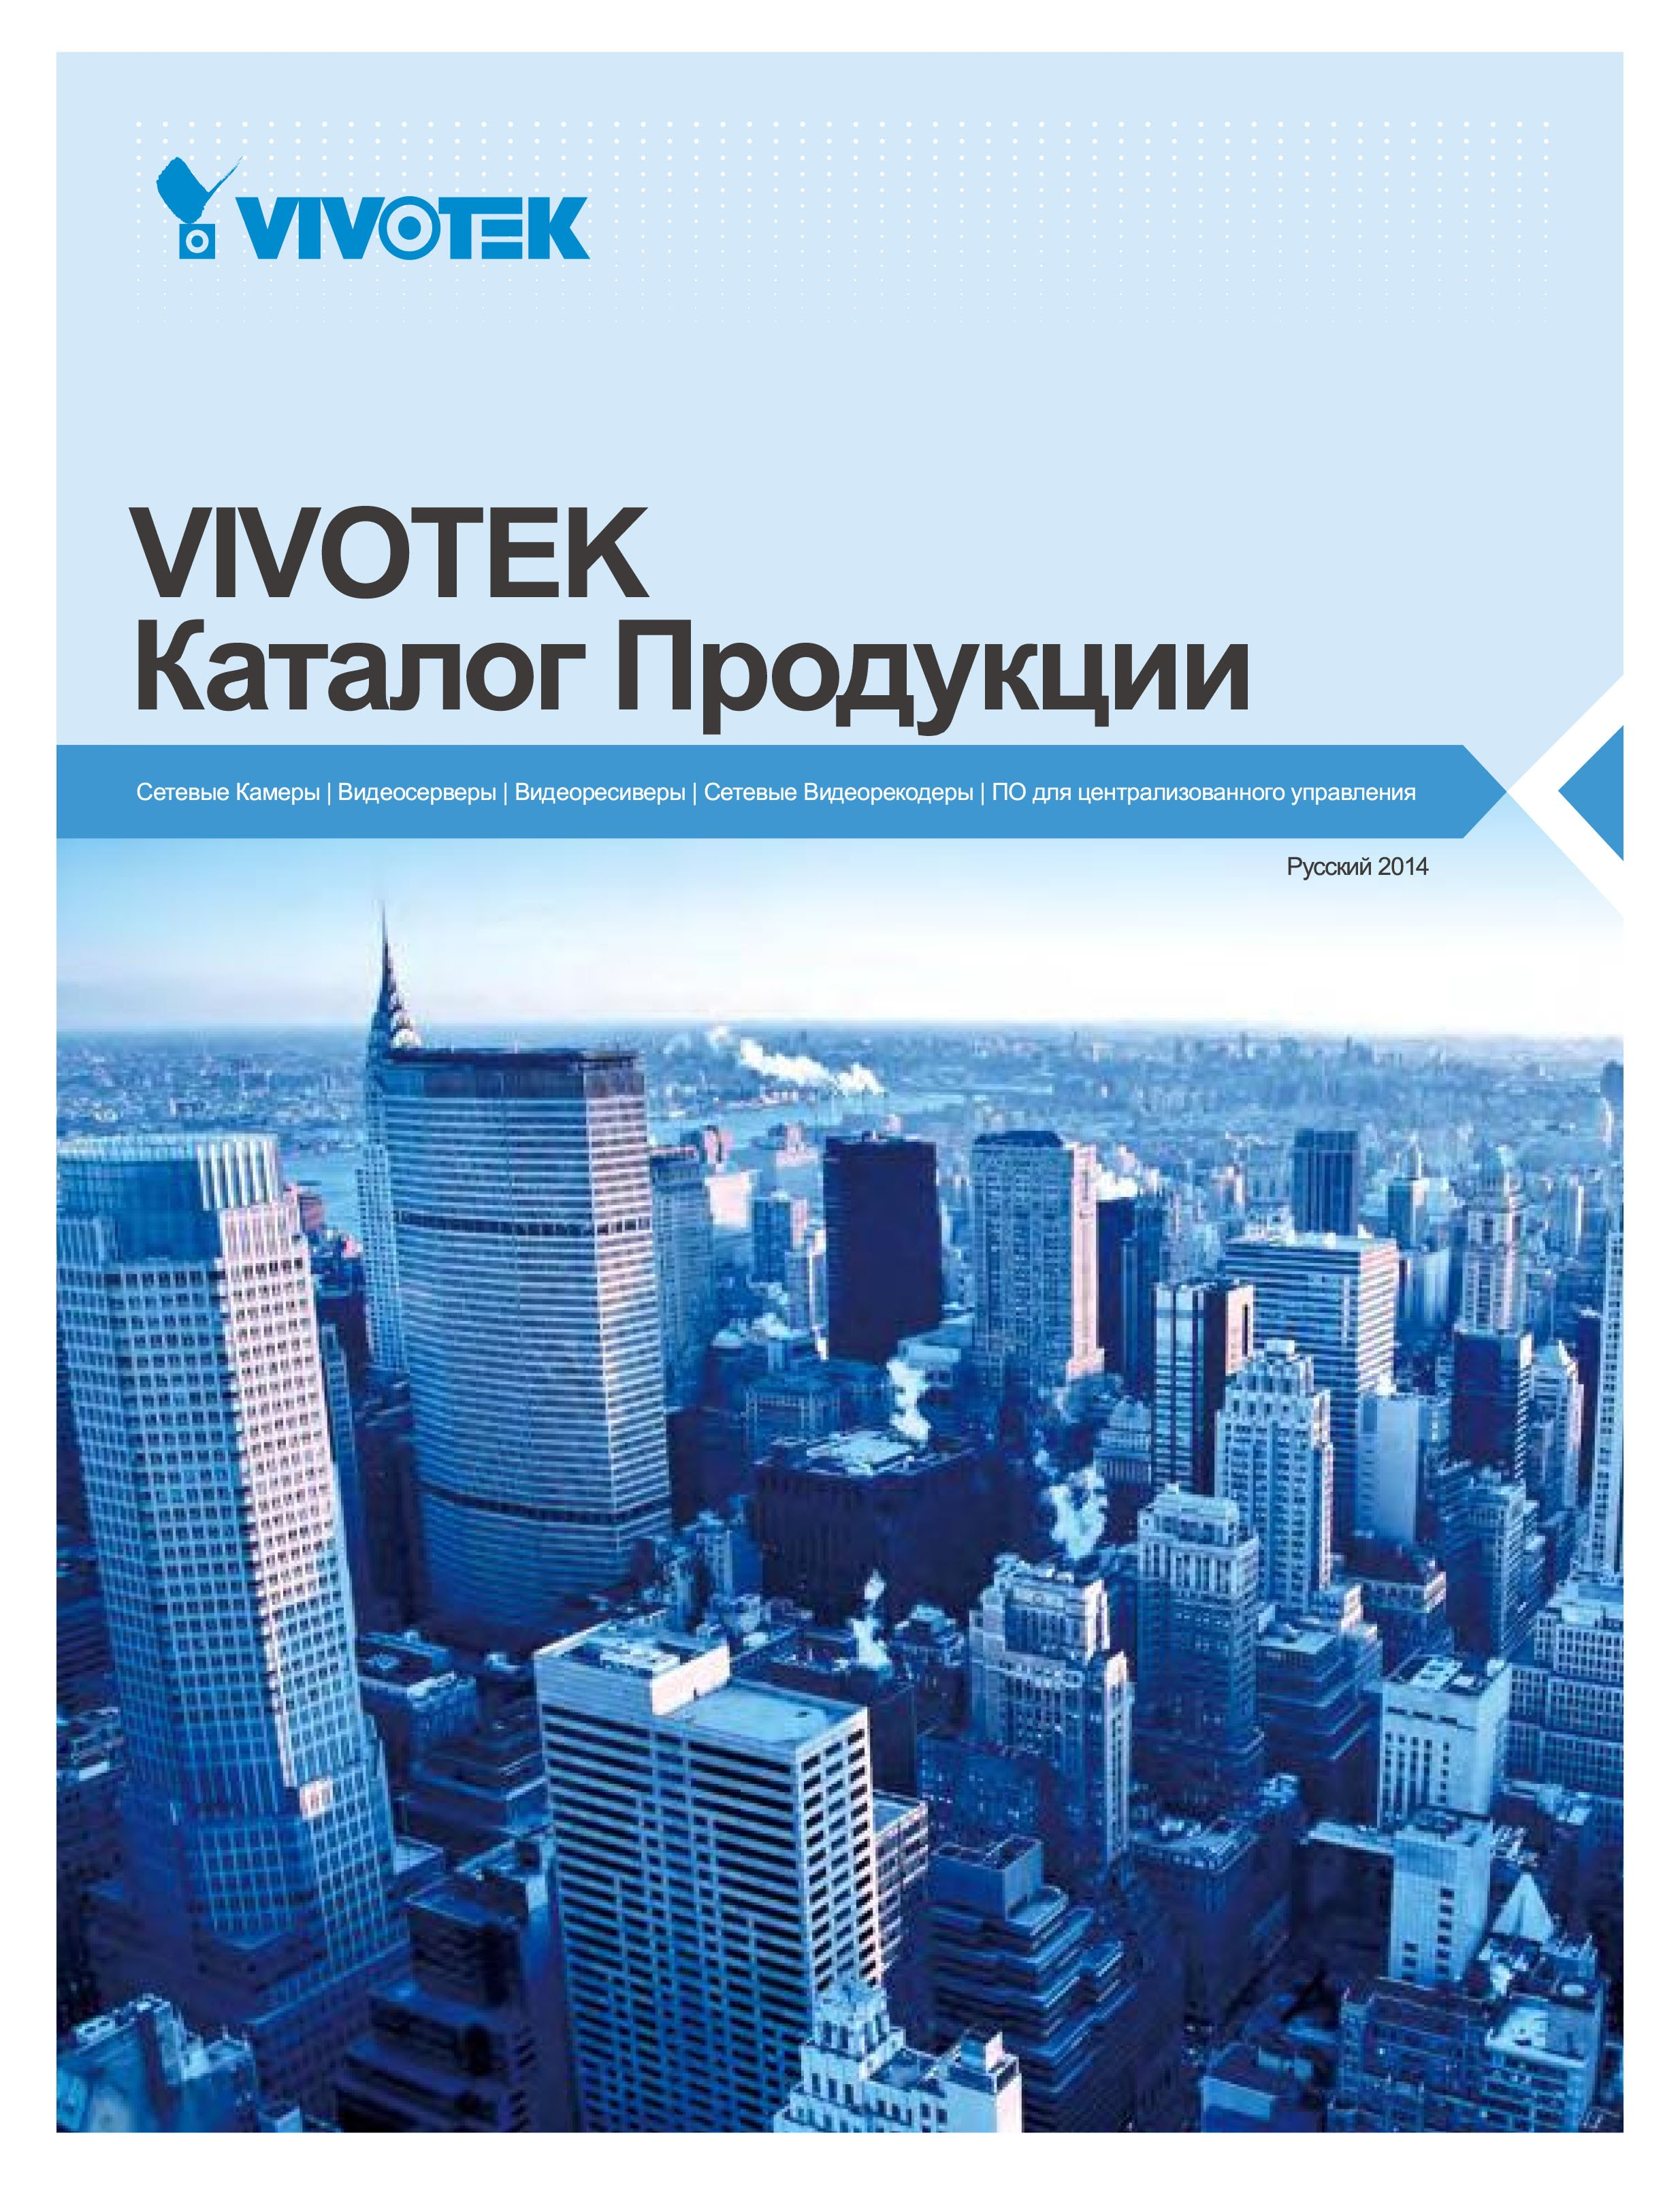 http://download.vivotek.com/downloadfile/downloads/brochure/brochure_ru.pdf